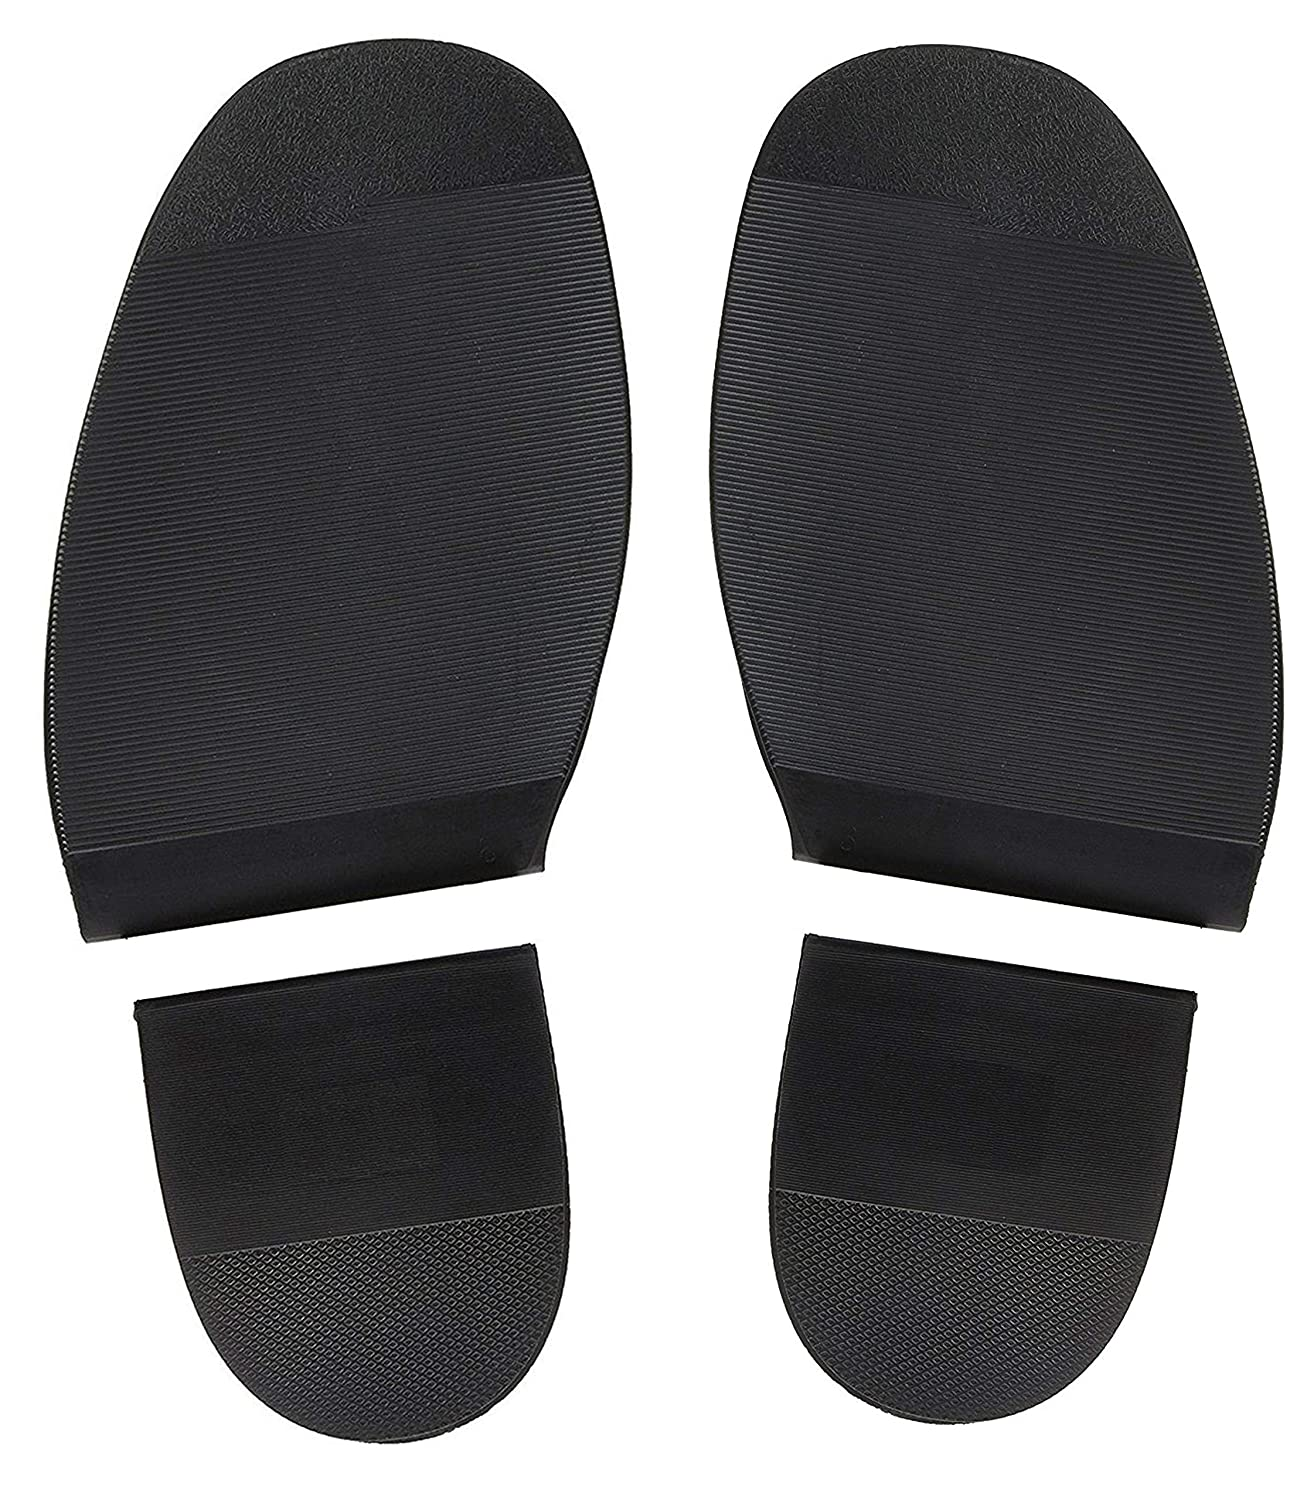 9a23c7b73942b Shoe Repair Replacement Rubber Heels and Soles 1 Pair